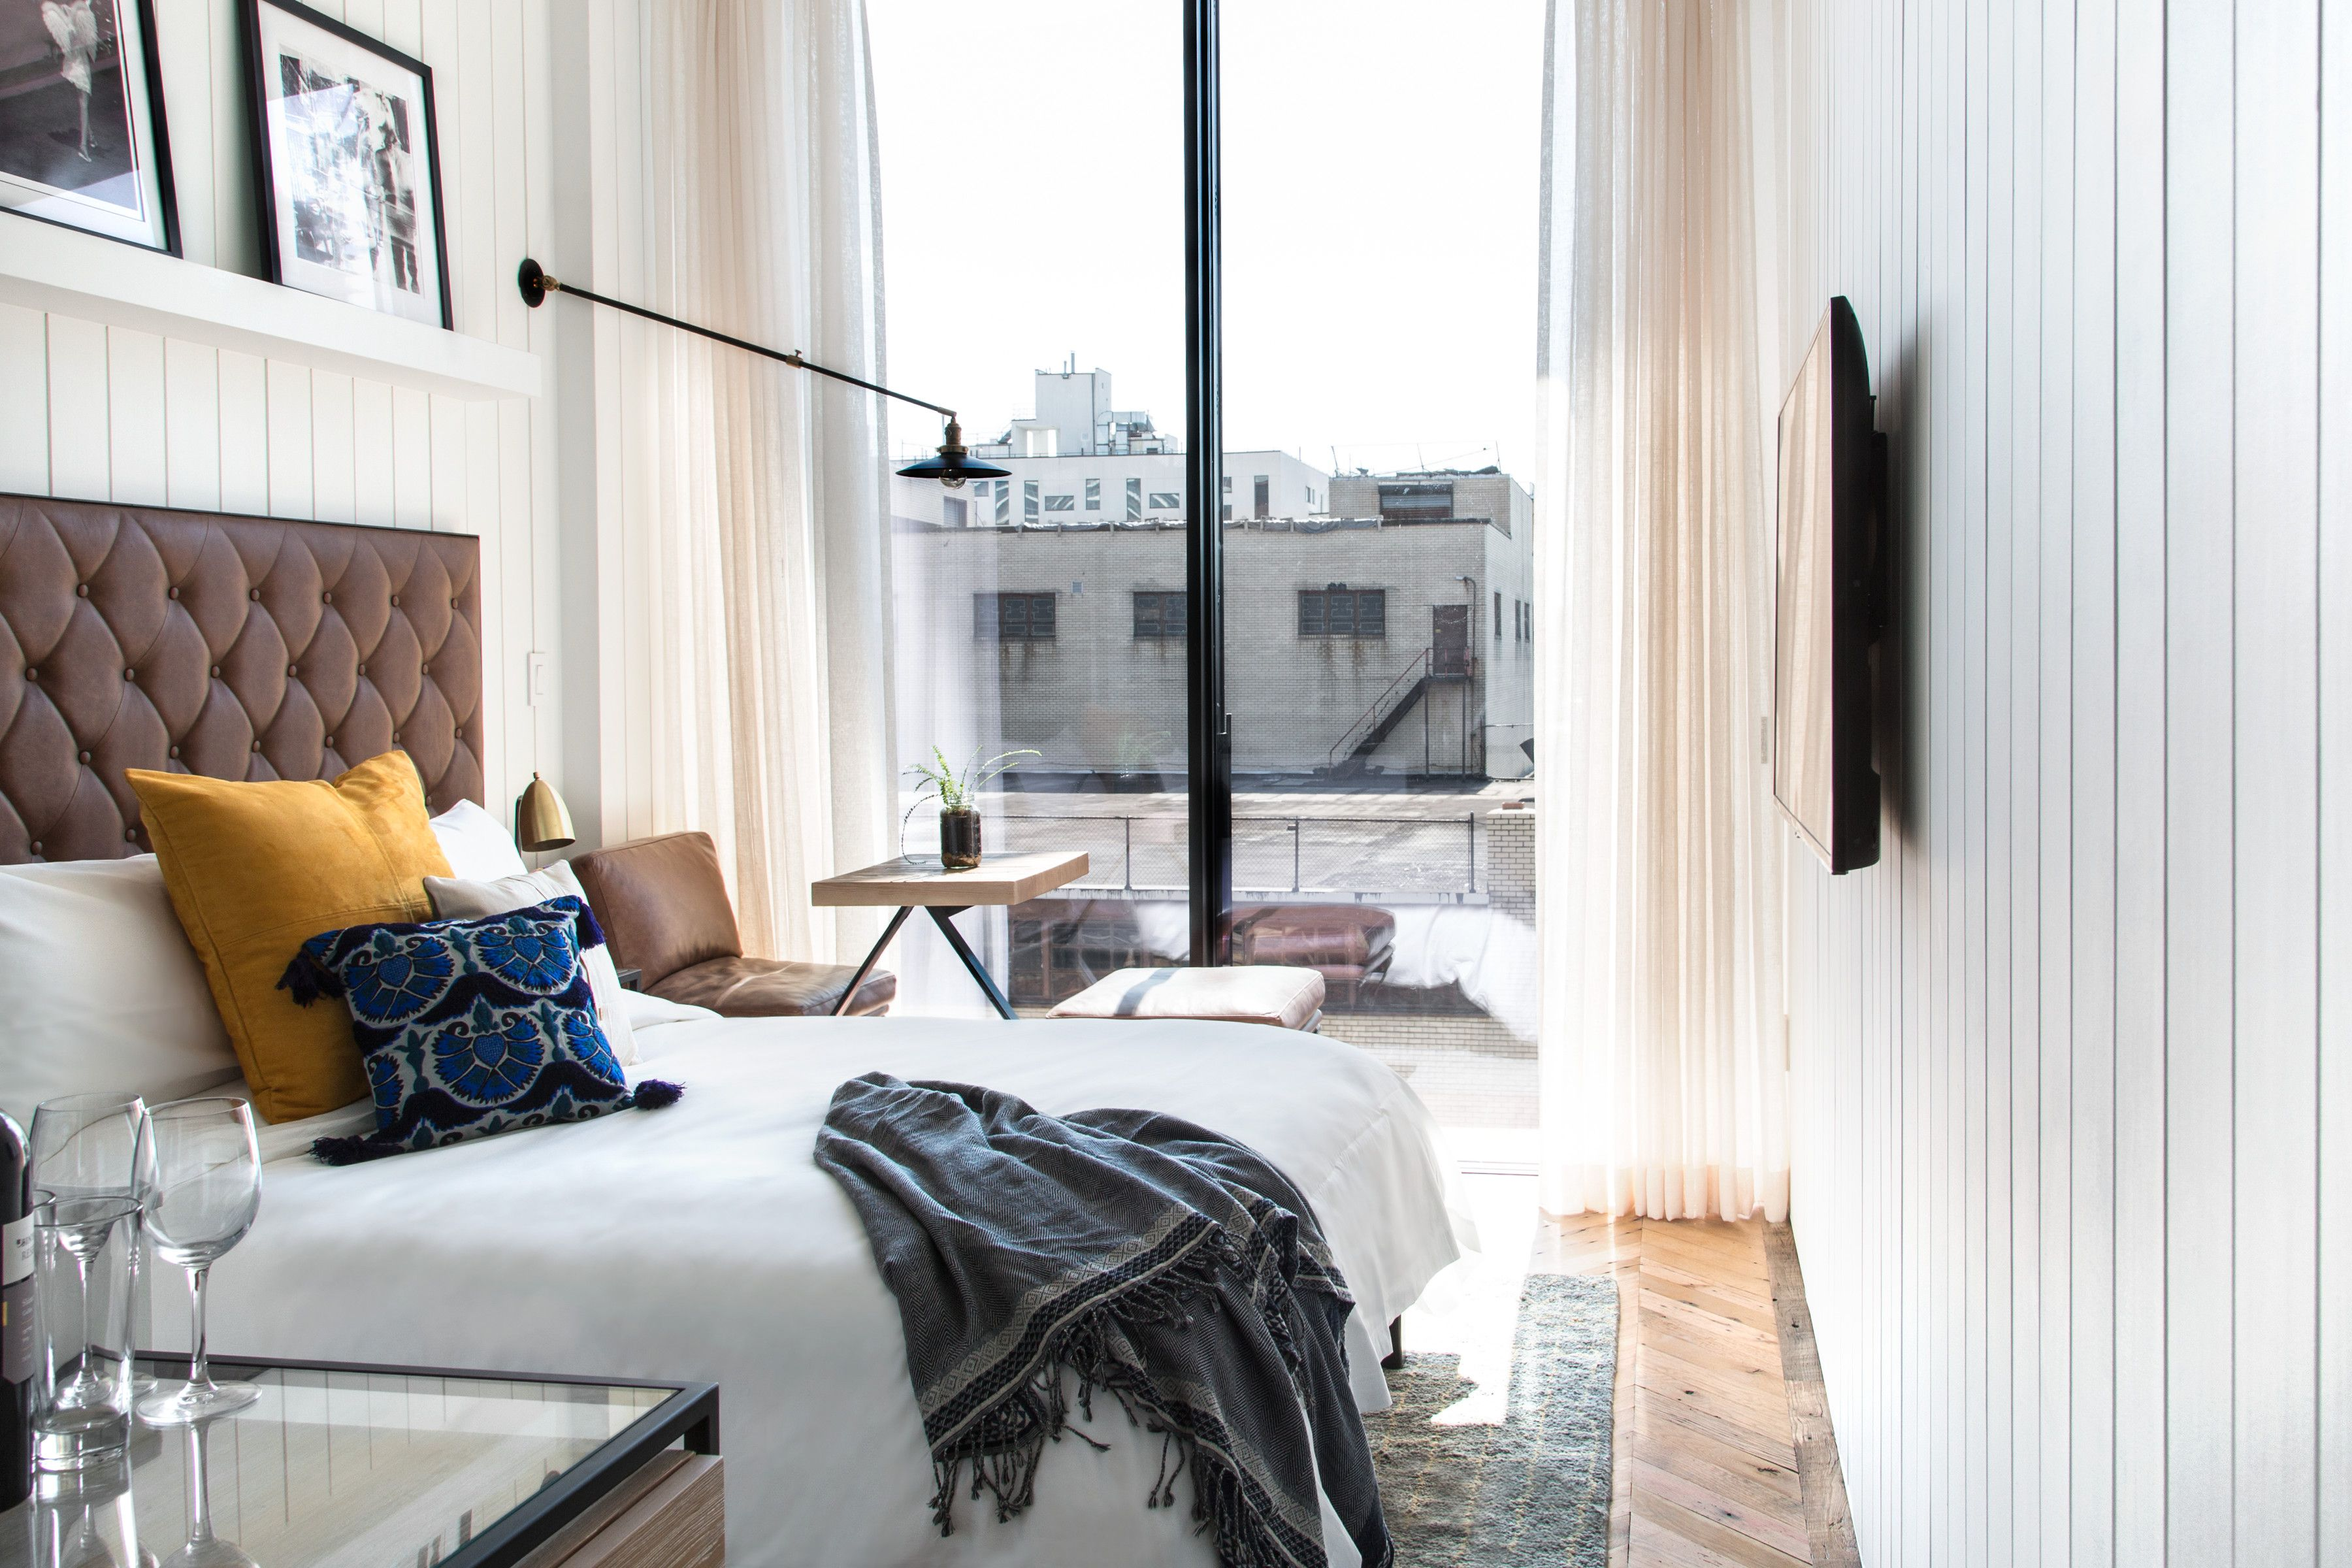 The Williamsburg Hotel Staycation - What To Do In Williamsburg, Brooklyn